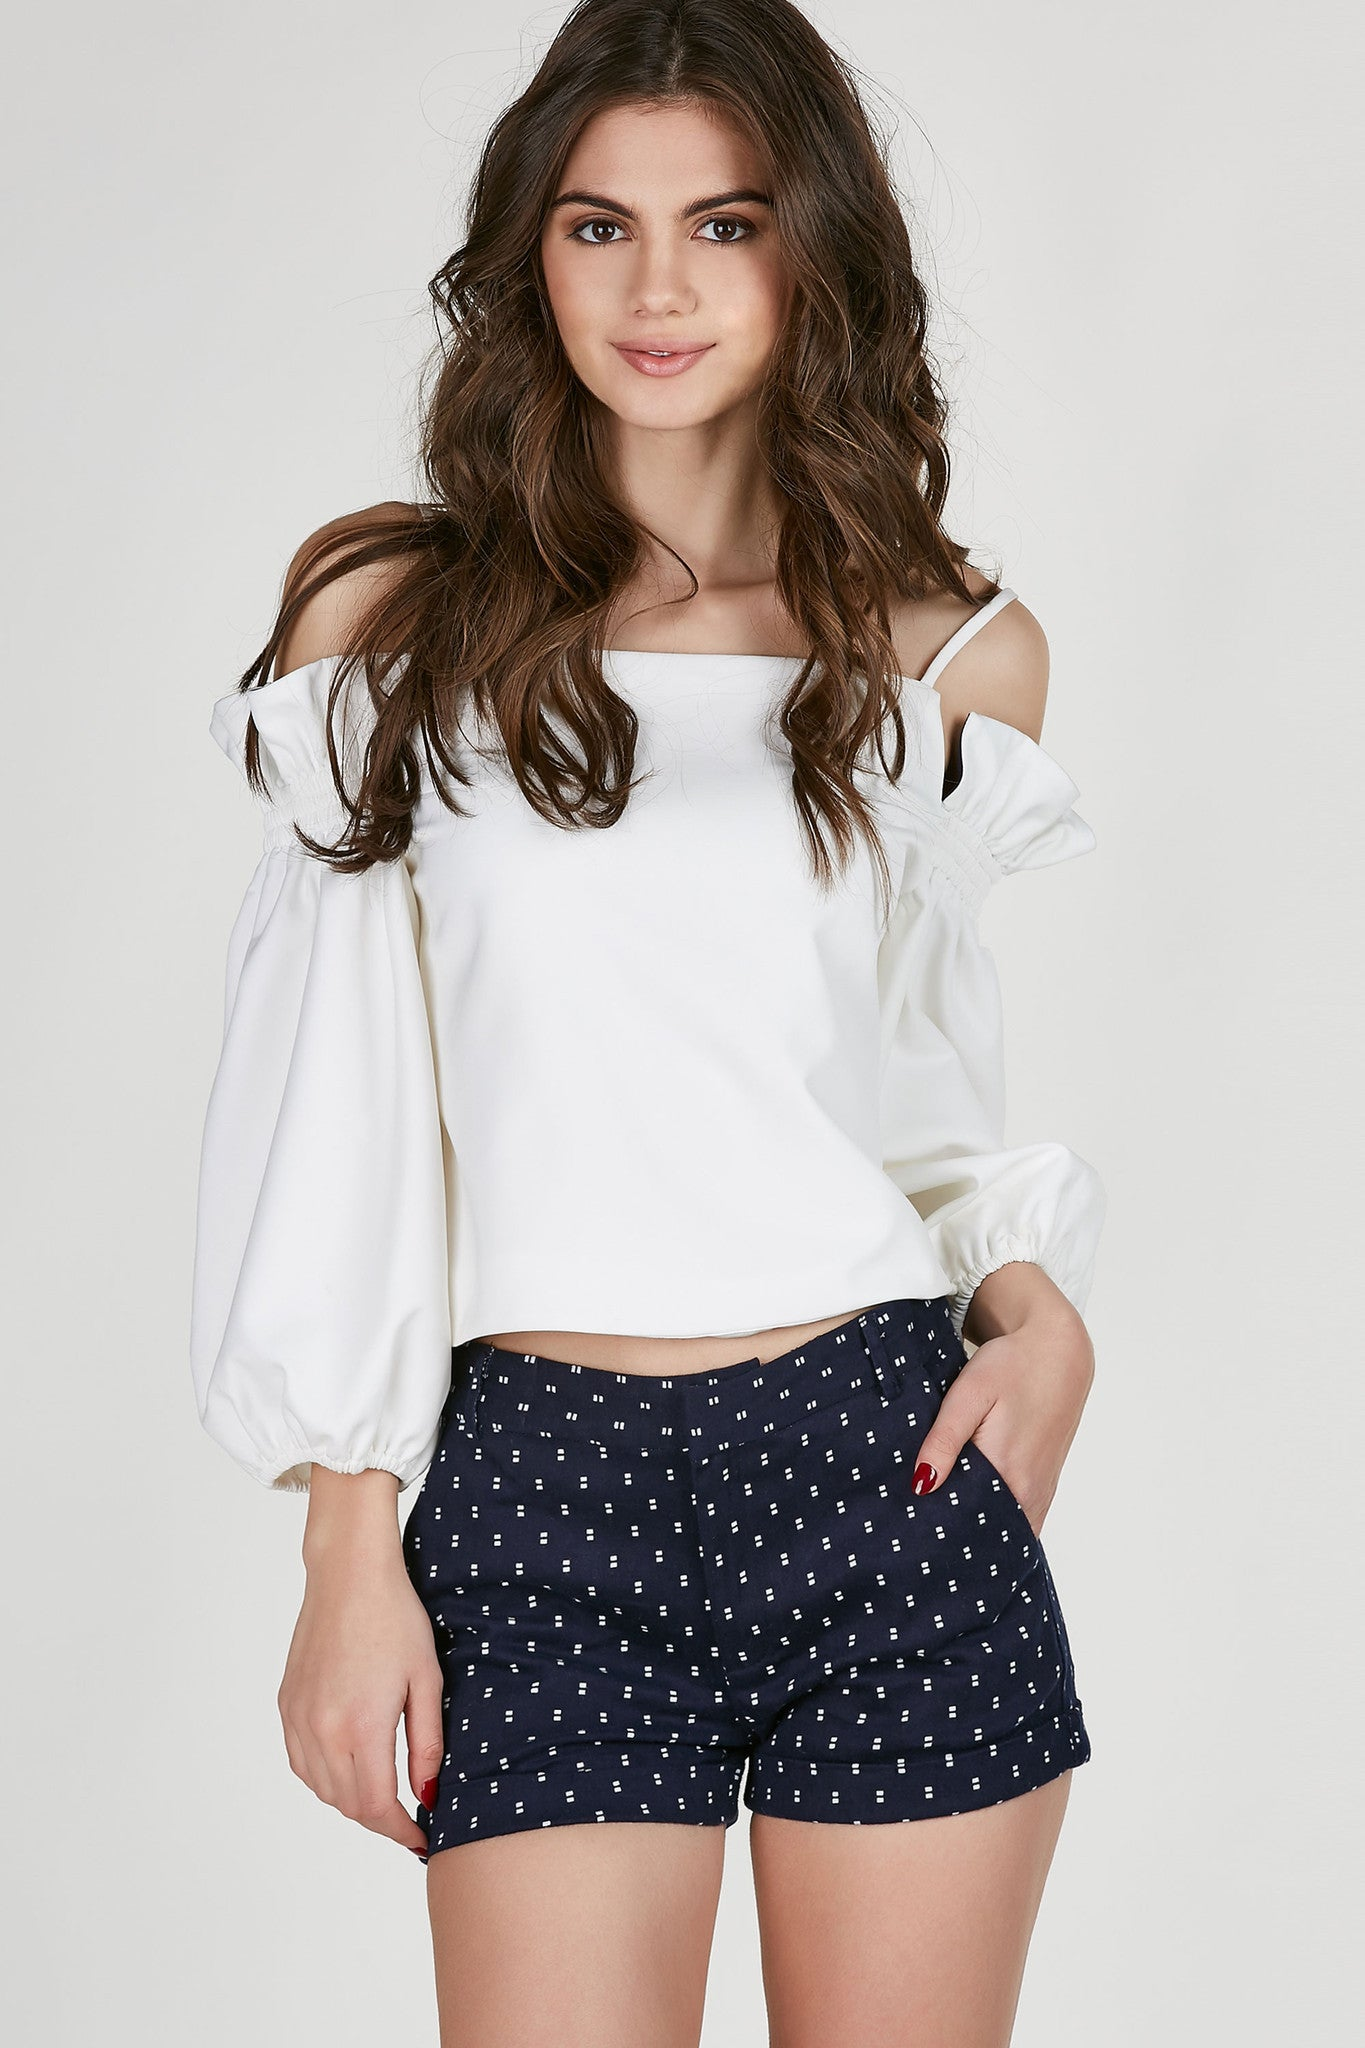 Structured cold shoulder top with spaghetti shoulder straps. Ruffle detailing by shoulders with boxy fit.